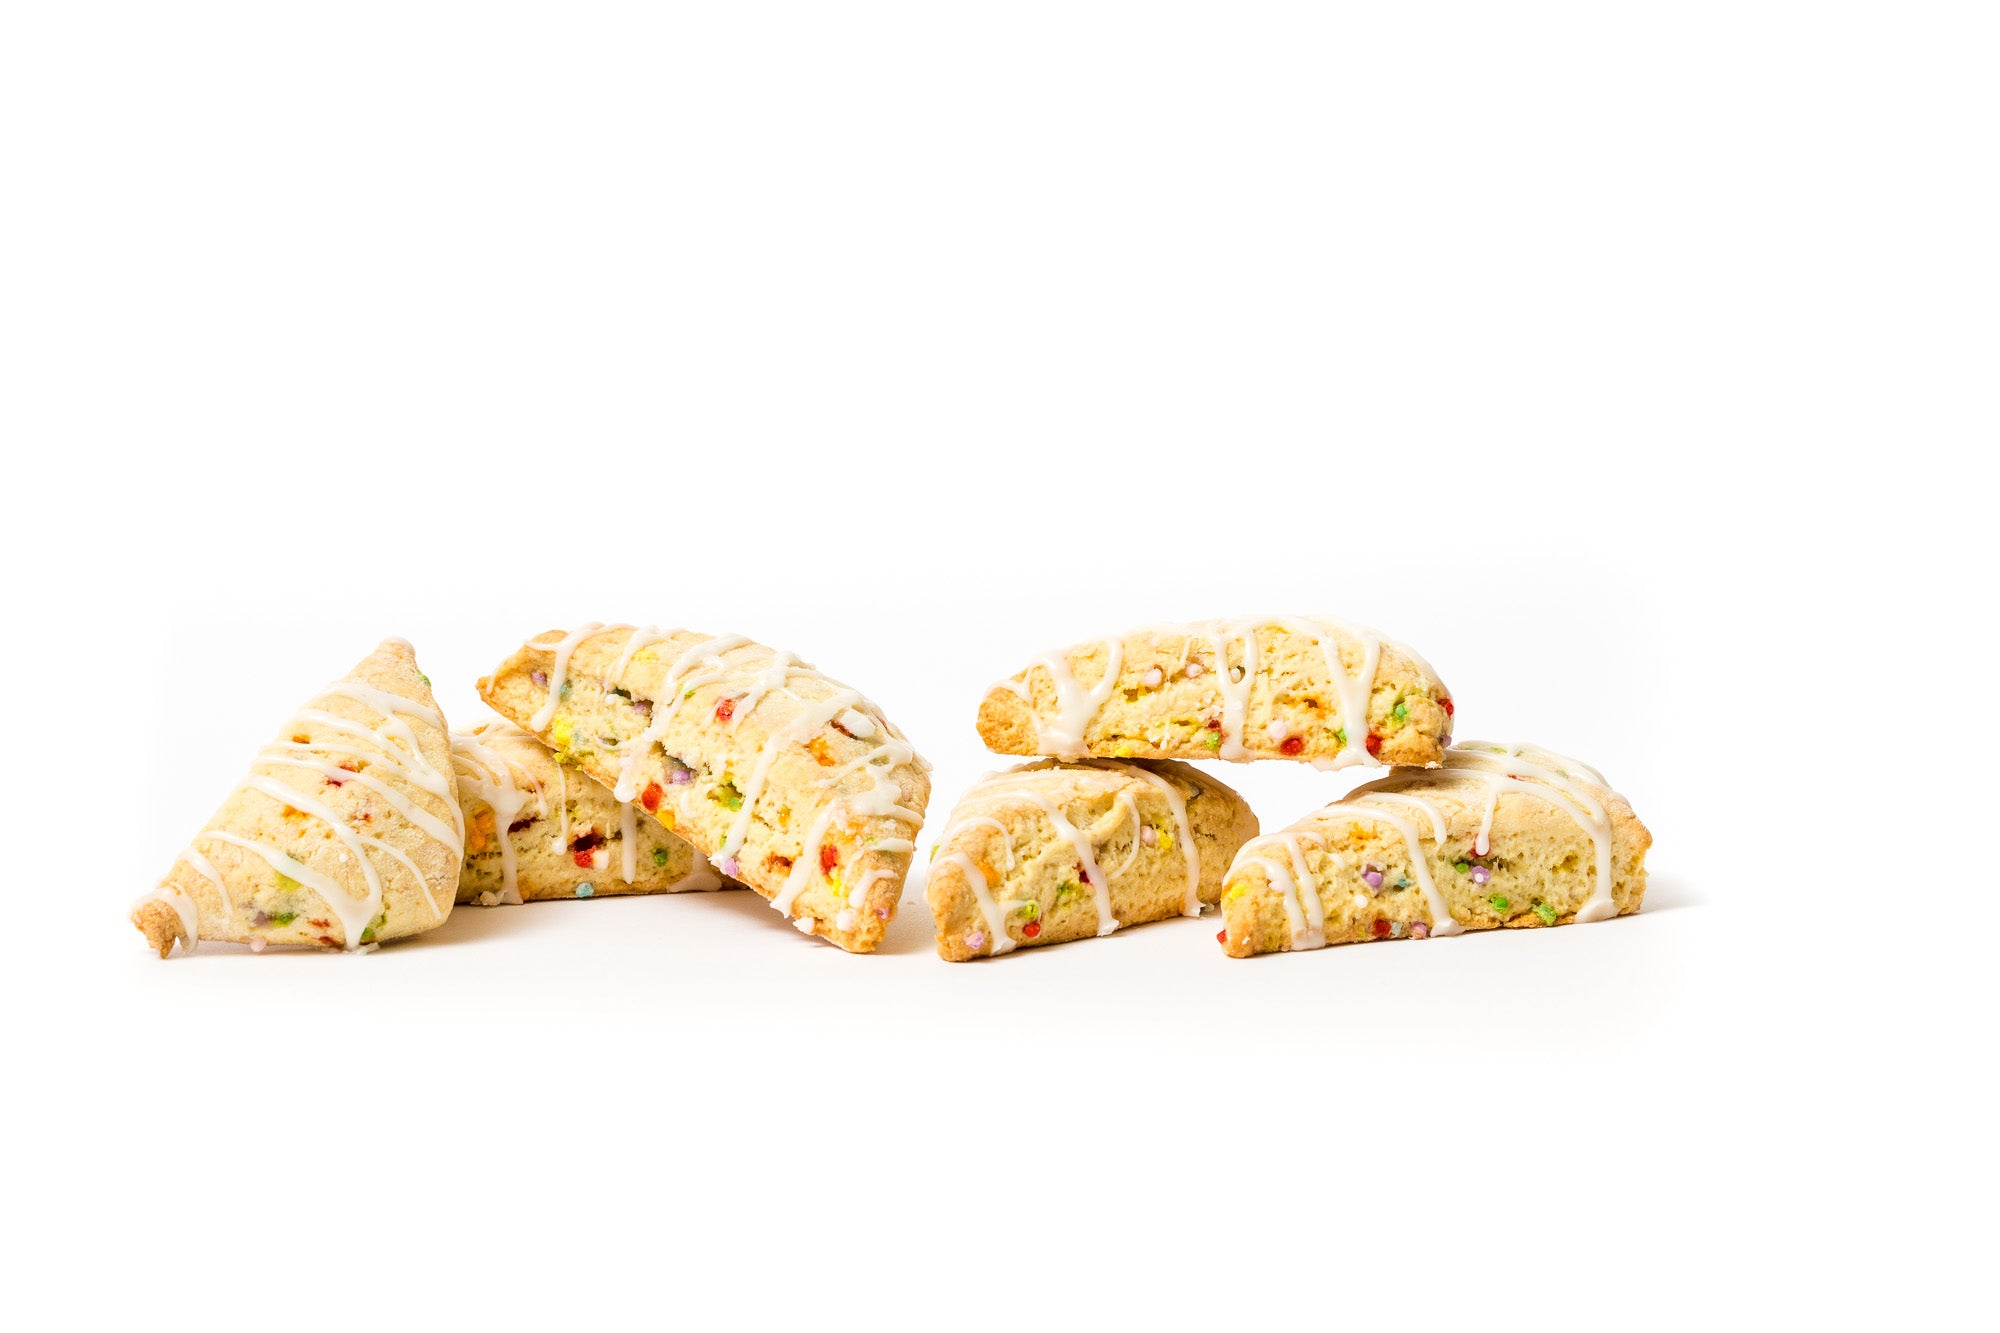 Image of six Miss Jones Baking Co Confetti Pop Cookie Mix Sprinkle Scones piled up